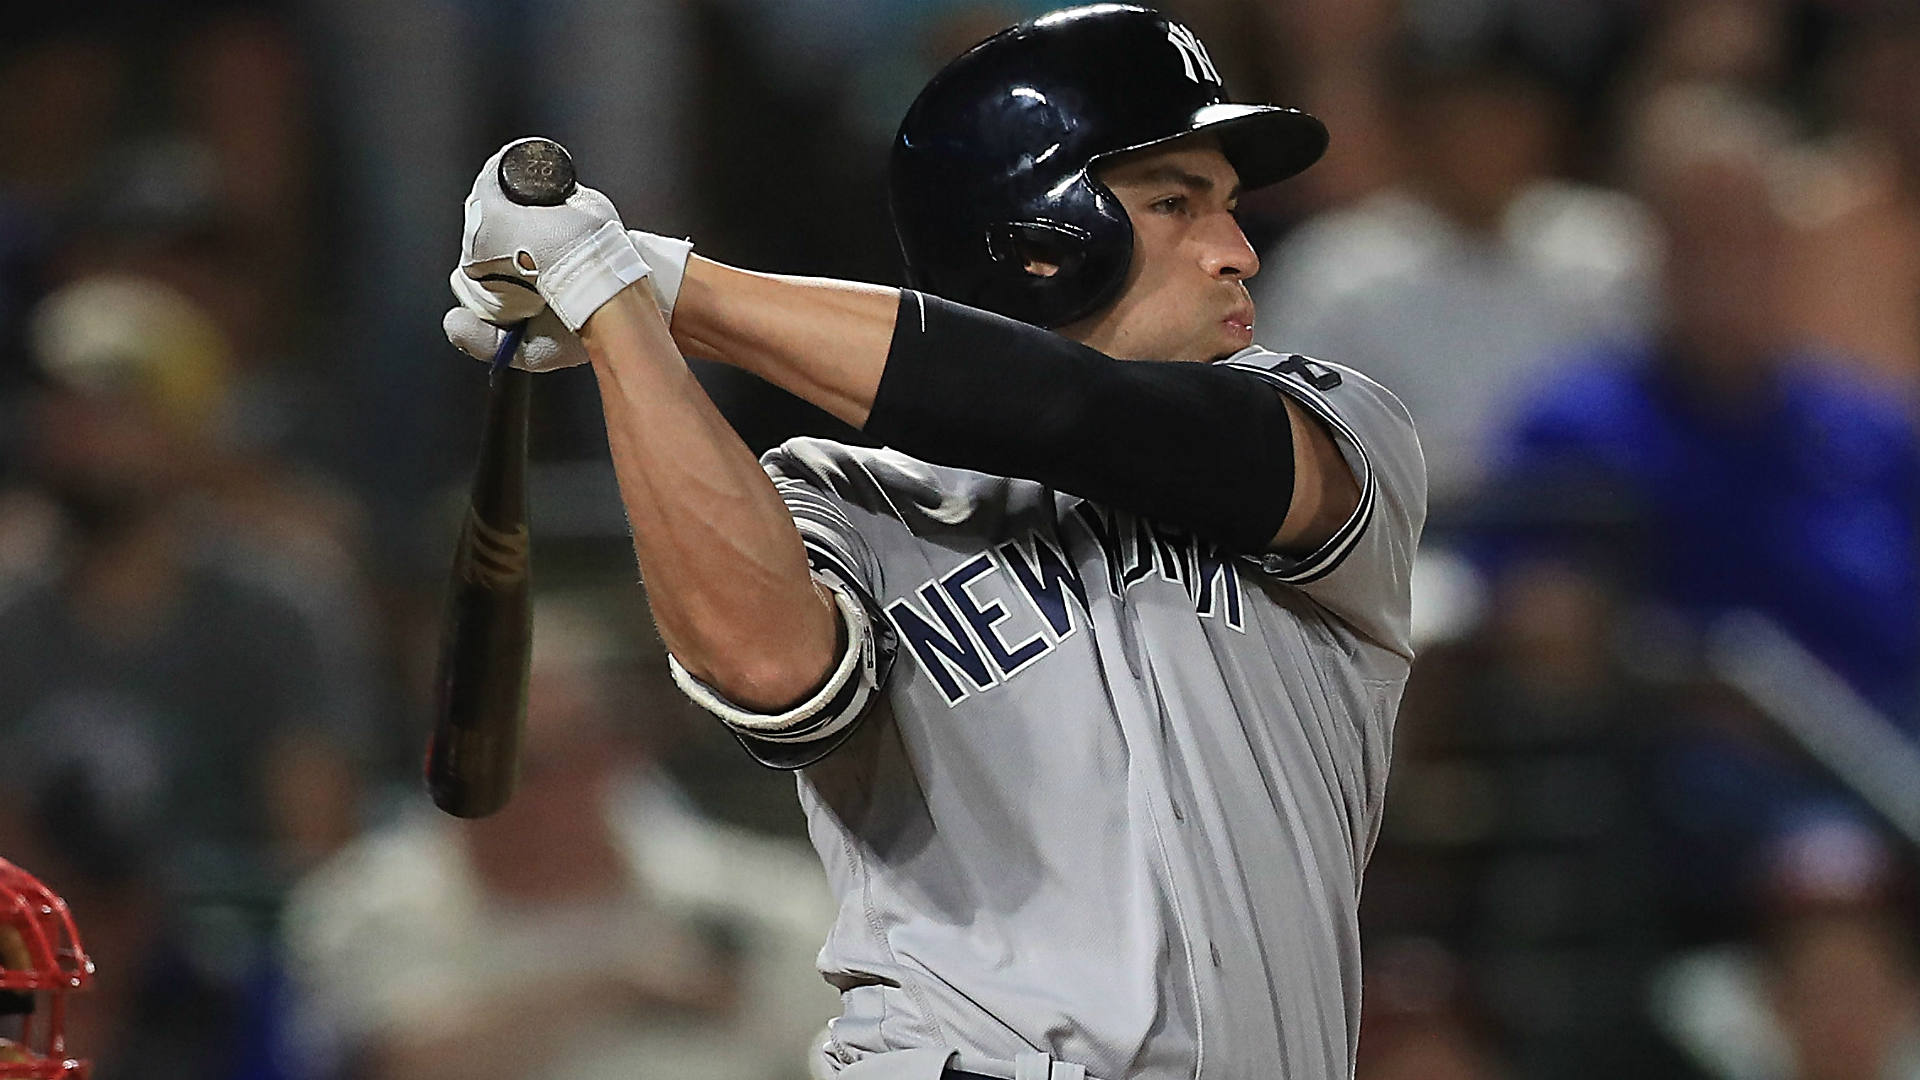 Jacobyellsbury-getty-ftr-050116jpg_10ap3sohck4721ap0ze0ve86tw